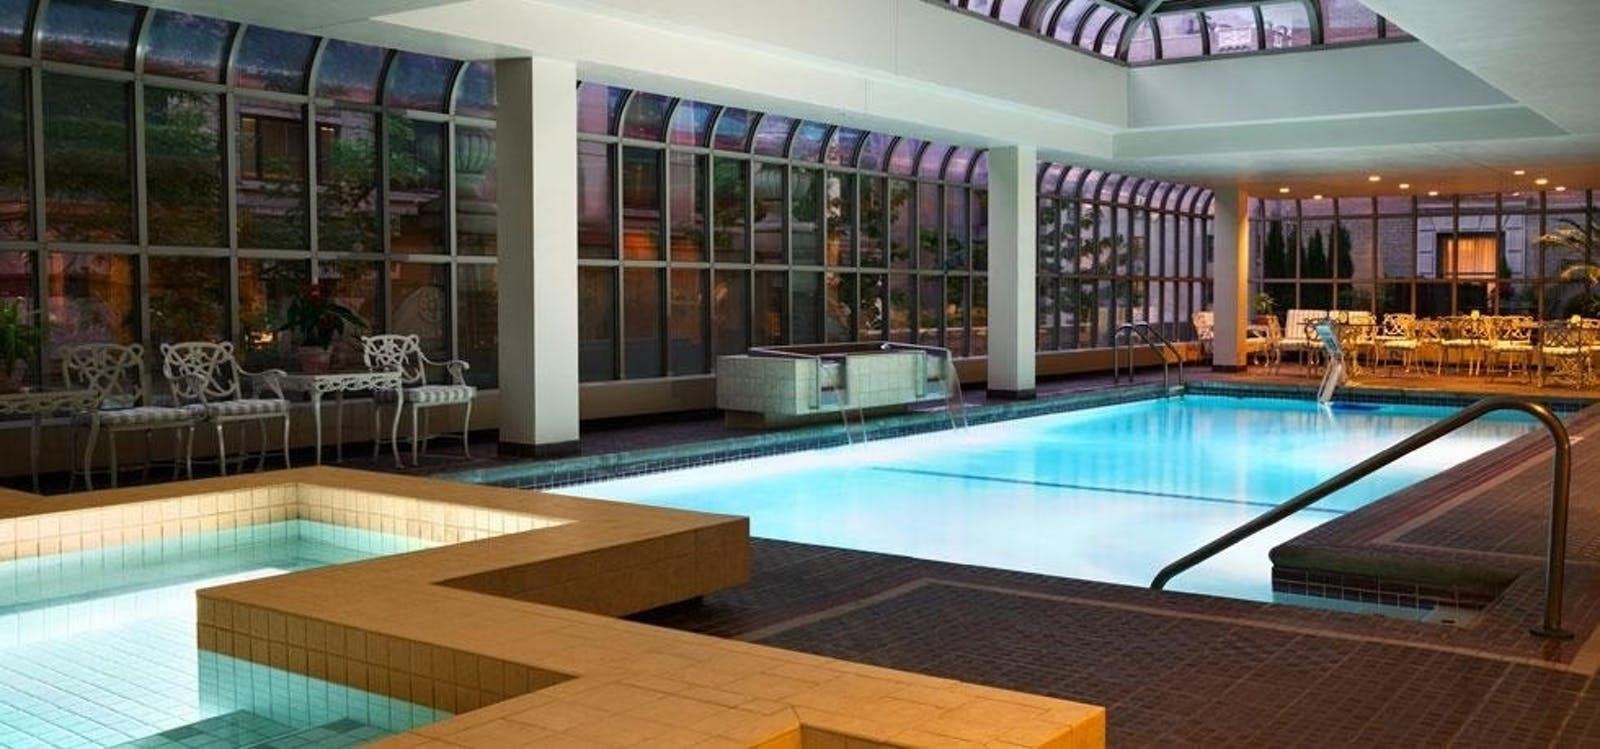 Pool at Fairmont Olympic Hotel, Seattle